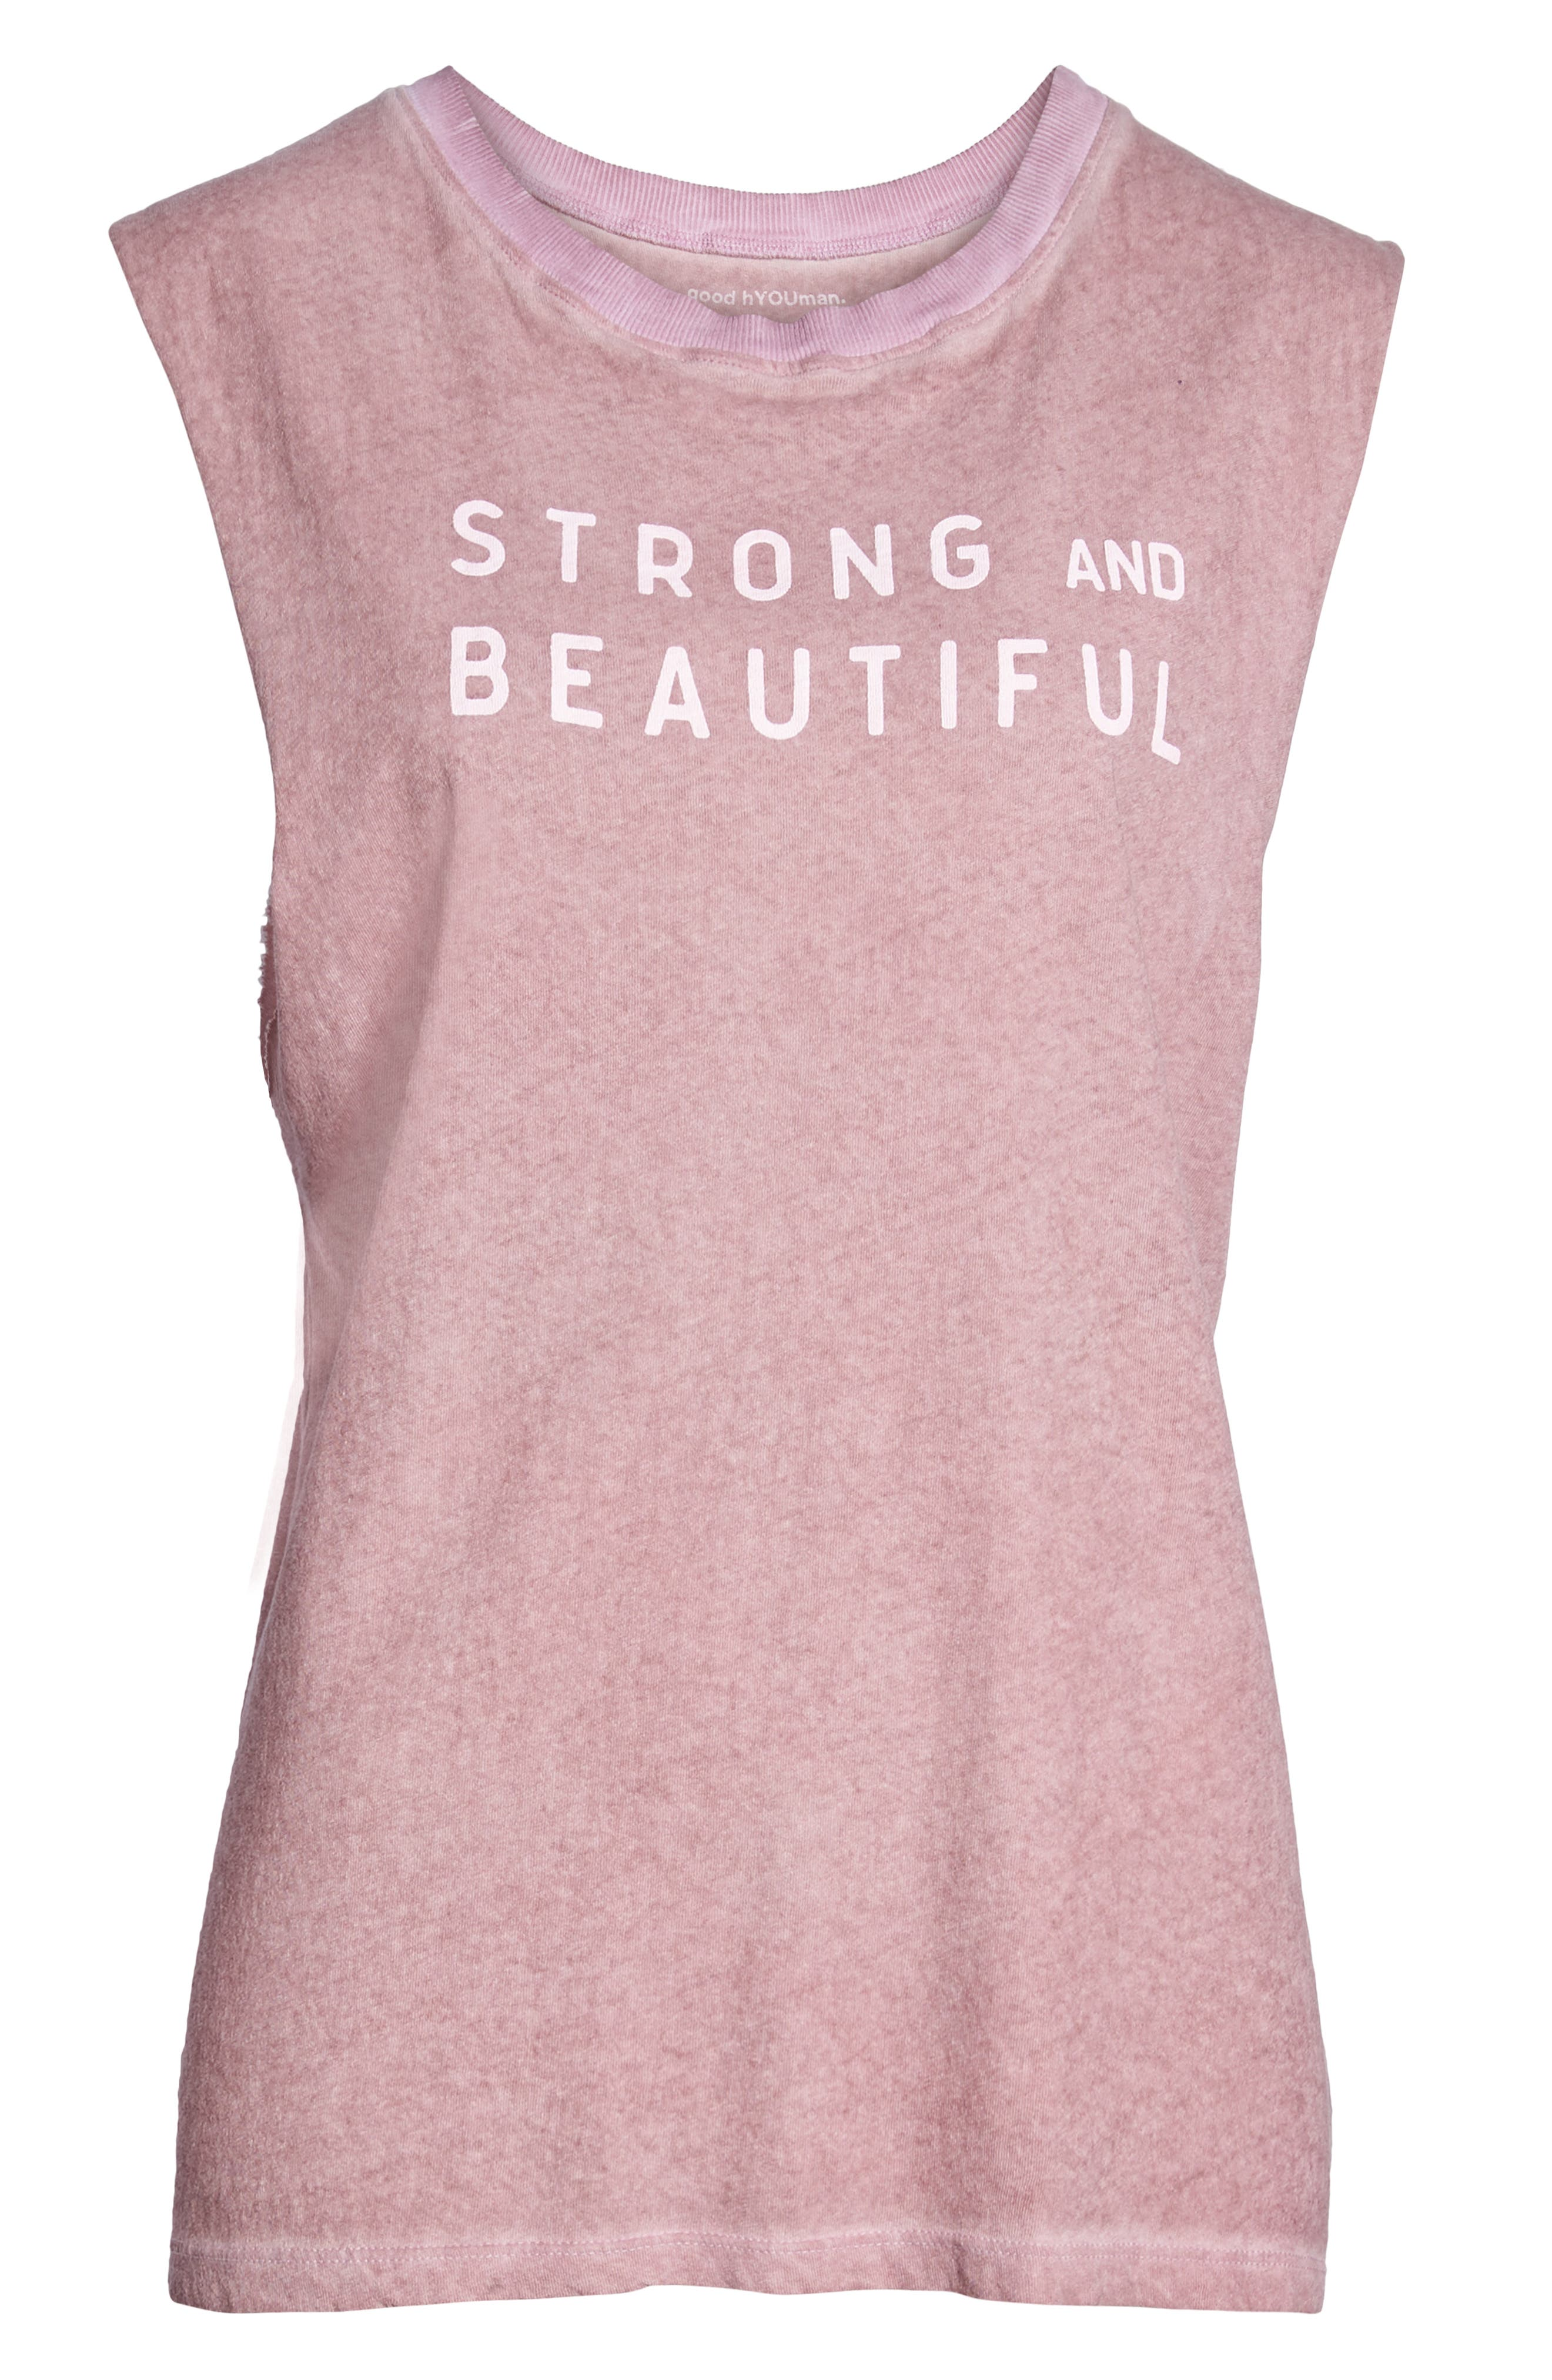 Strong and Beautiful Muscle Tank,                             Alternate thumbnail 7, color,                             680